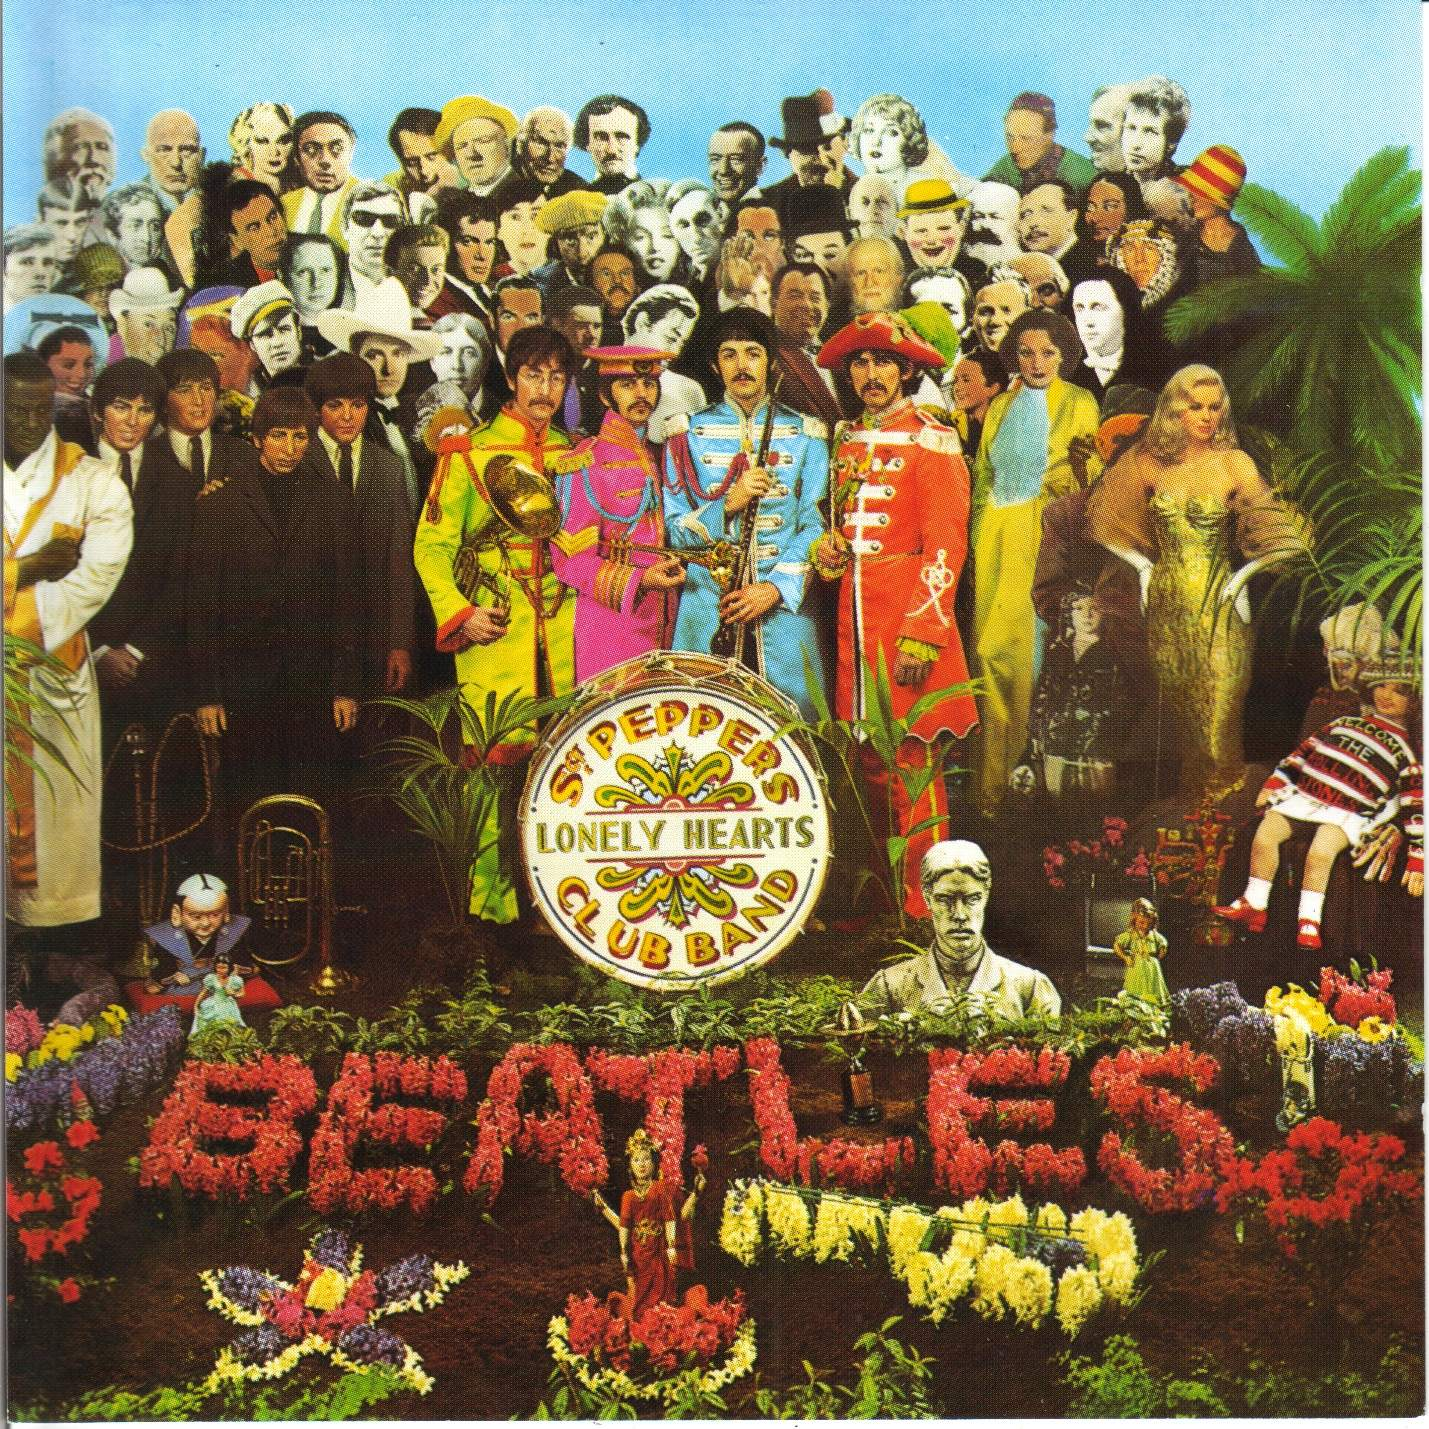 beatles-sgt-peppers-lonely-heart-club-band-primeraaaa1.jpg